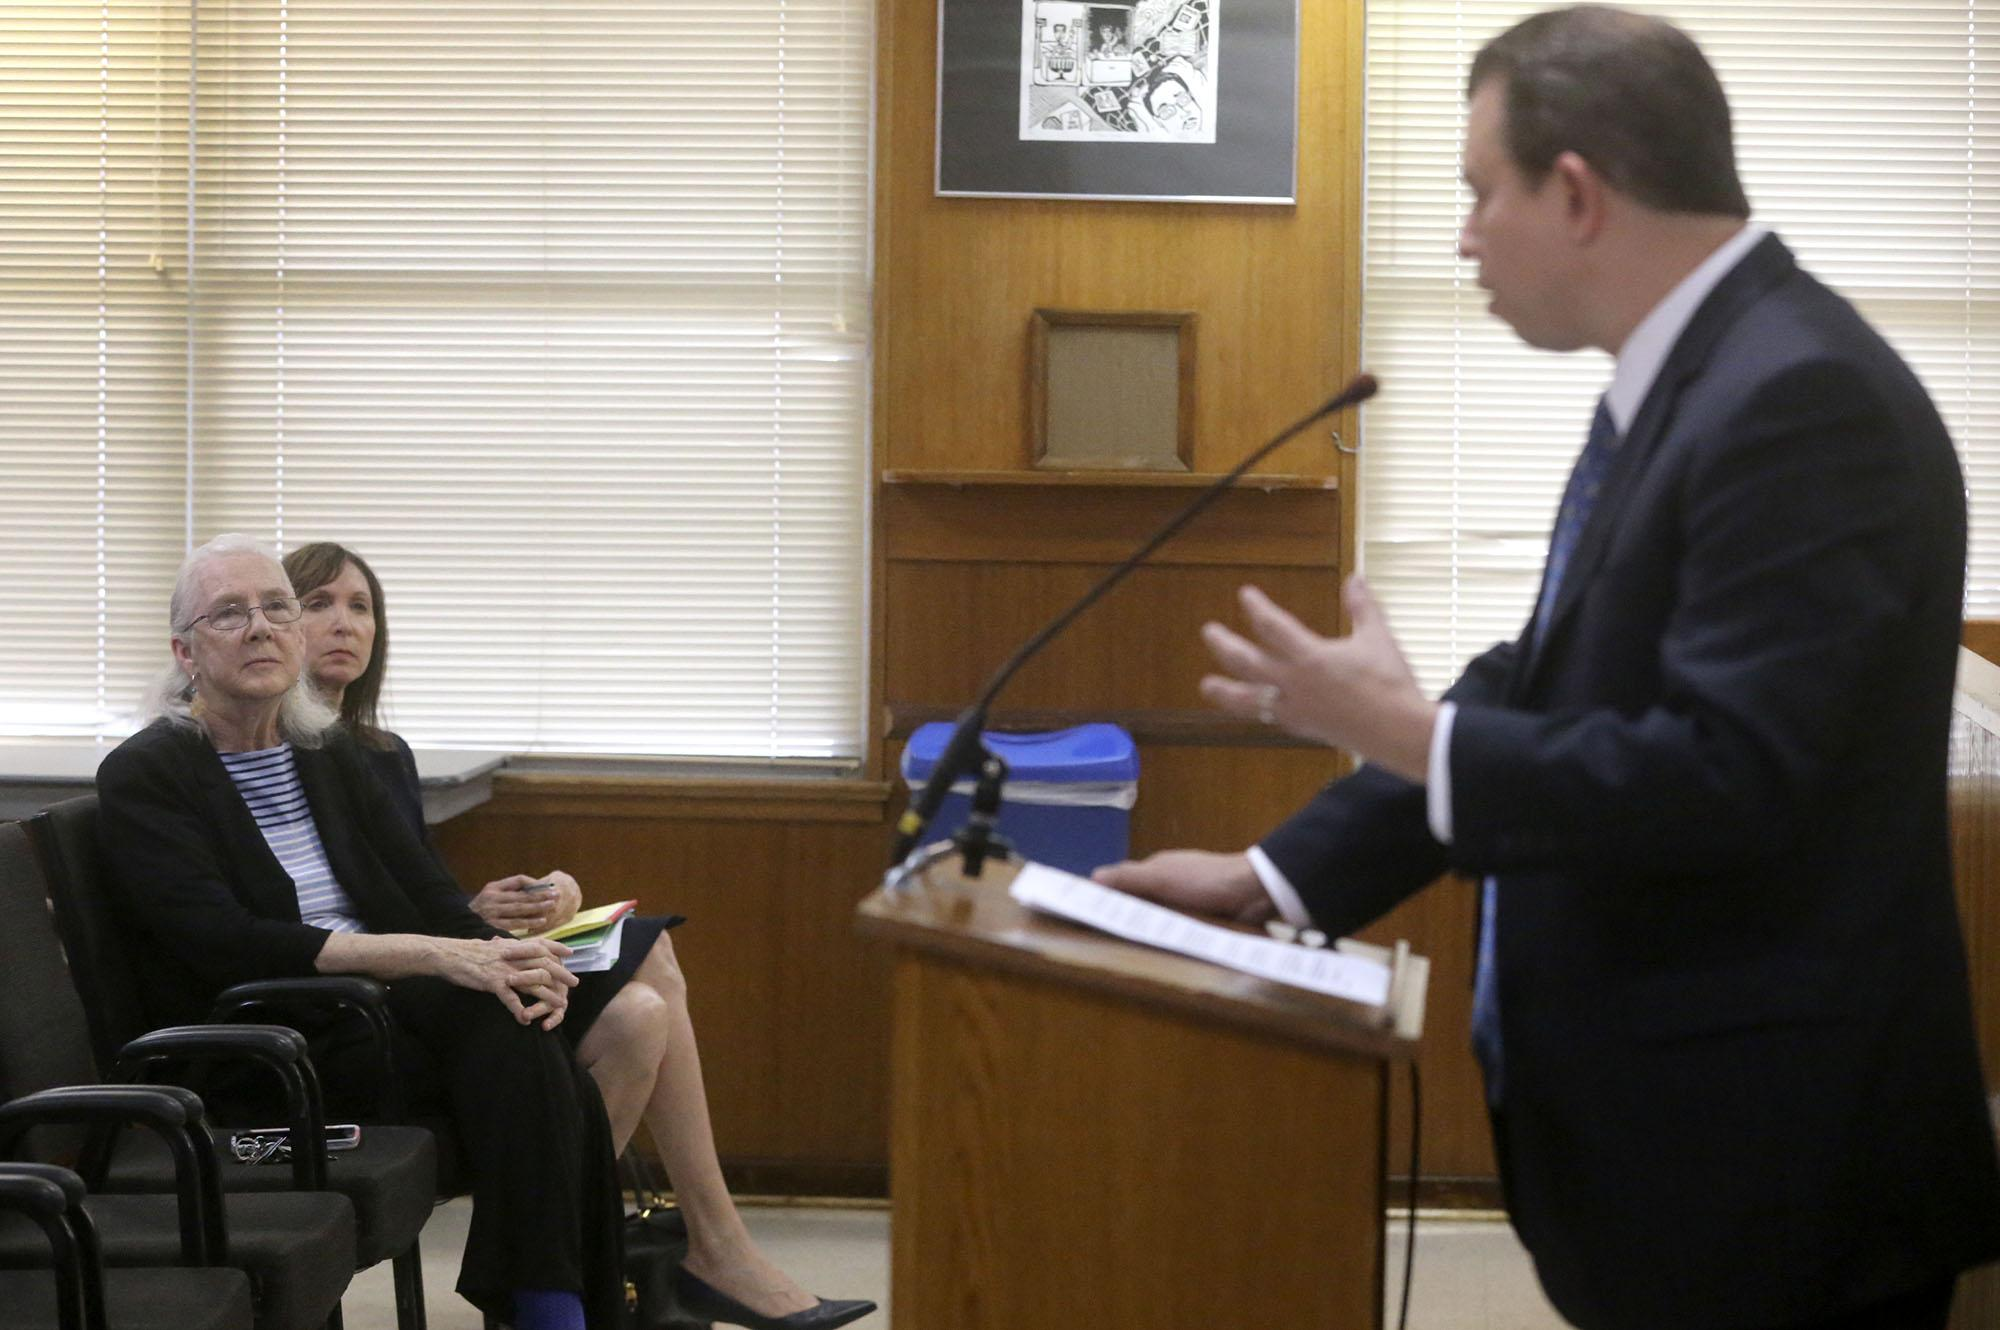 SAISD courted 3 charter school networks long before telling public ...